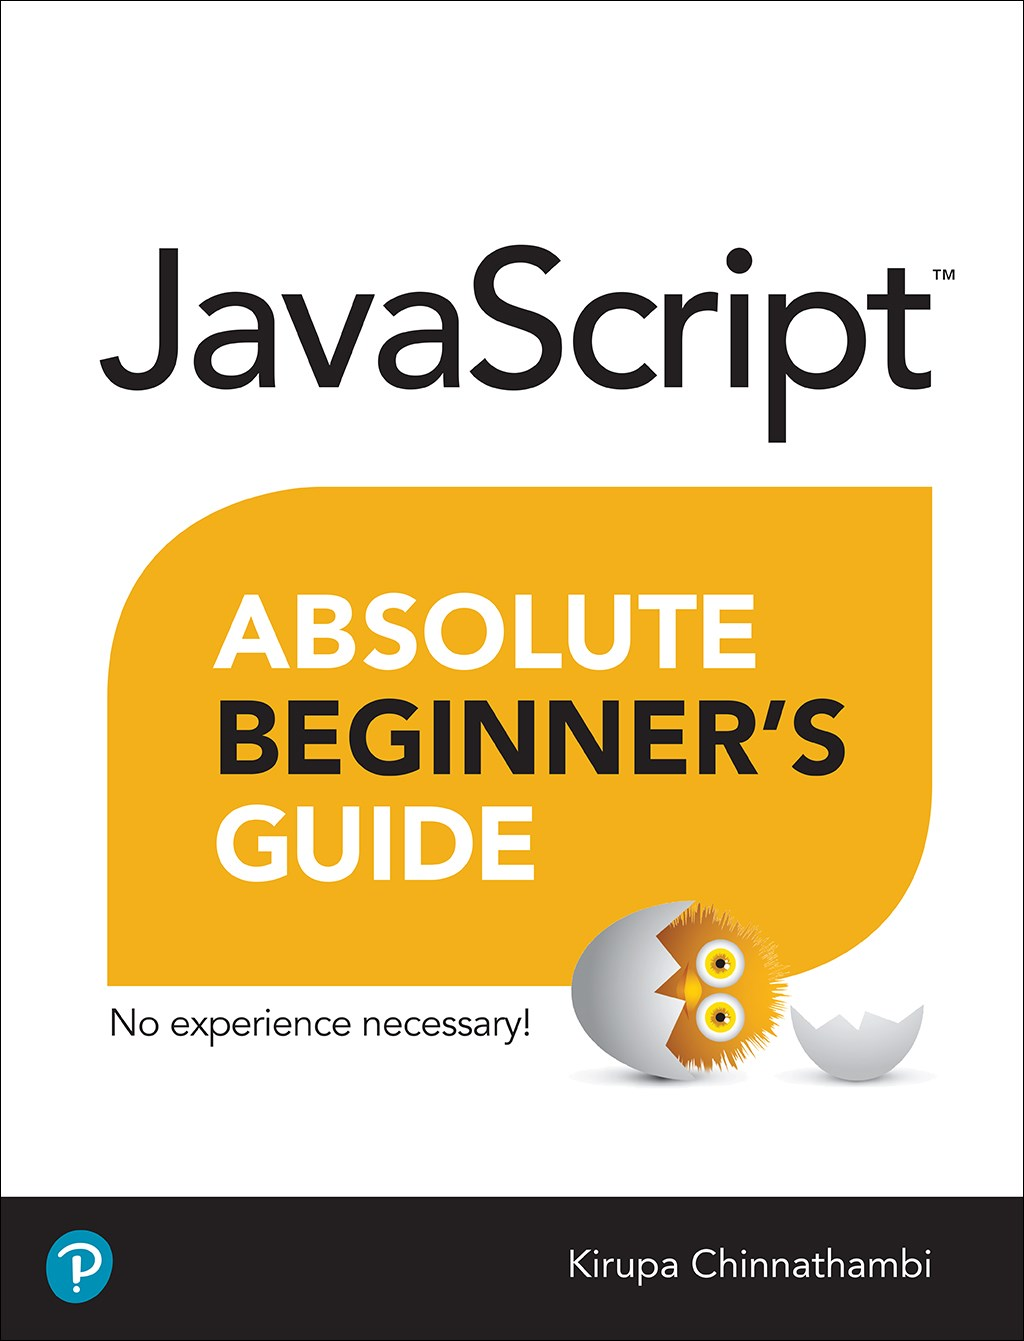 JavaScript Absolute Beginner's Guide, 2nd Edition